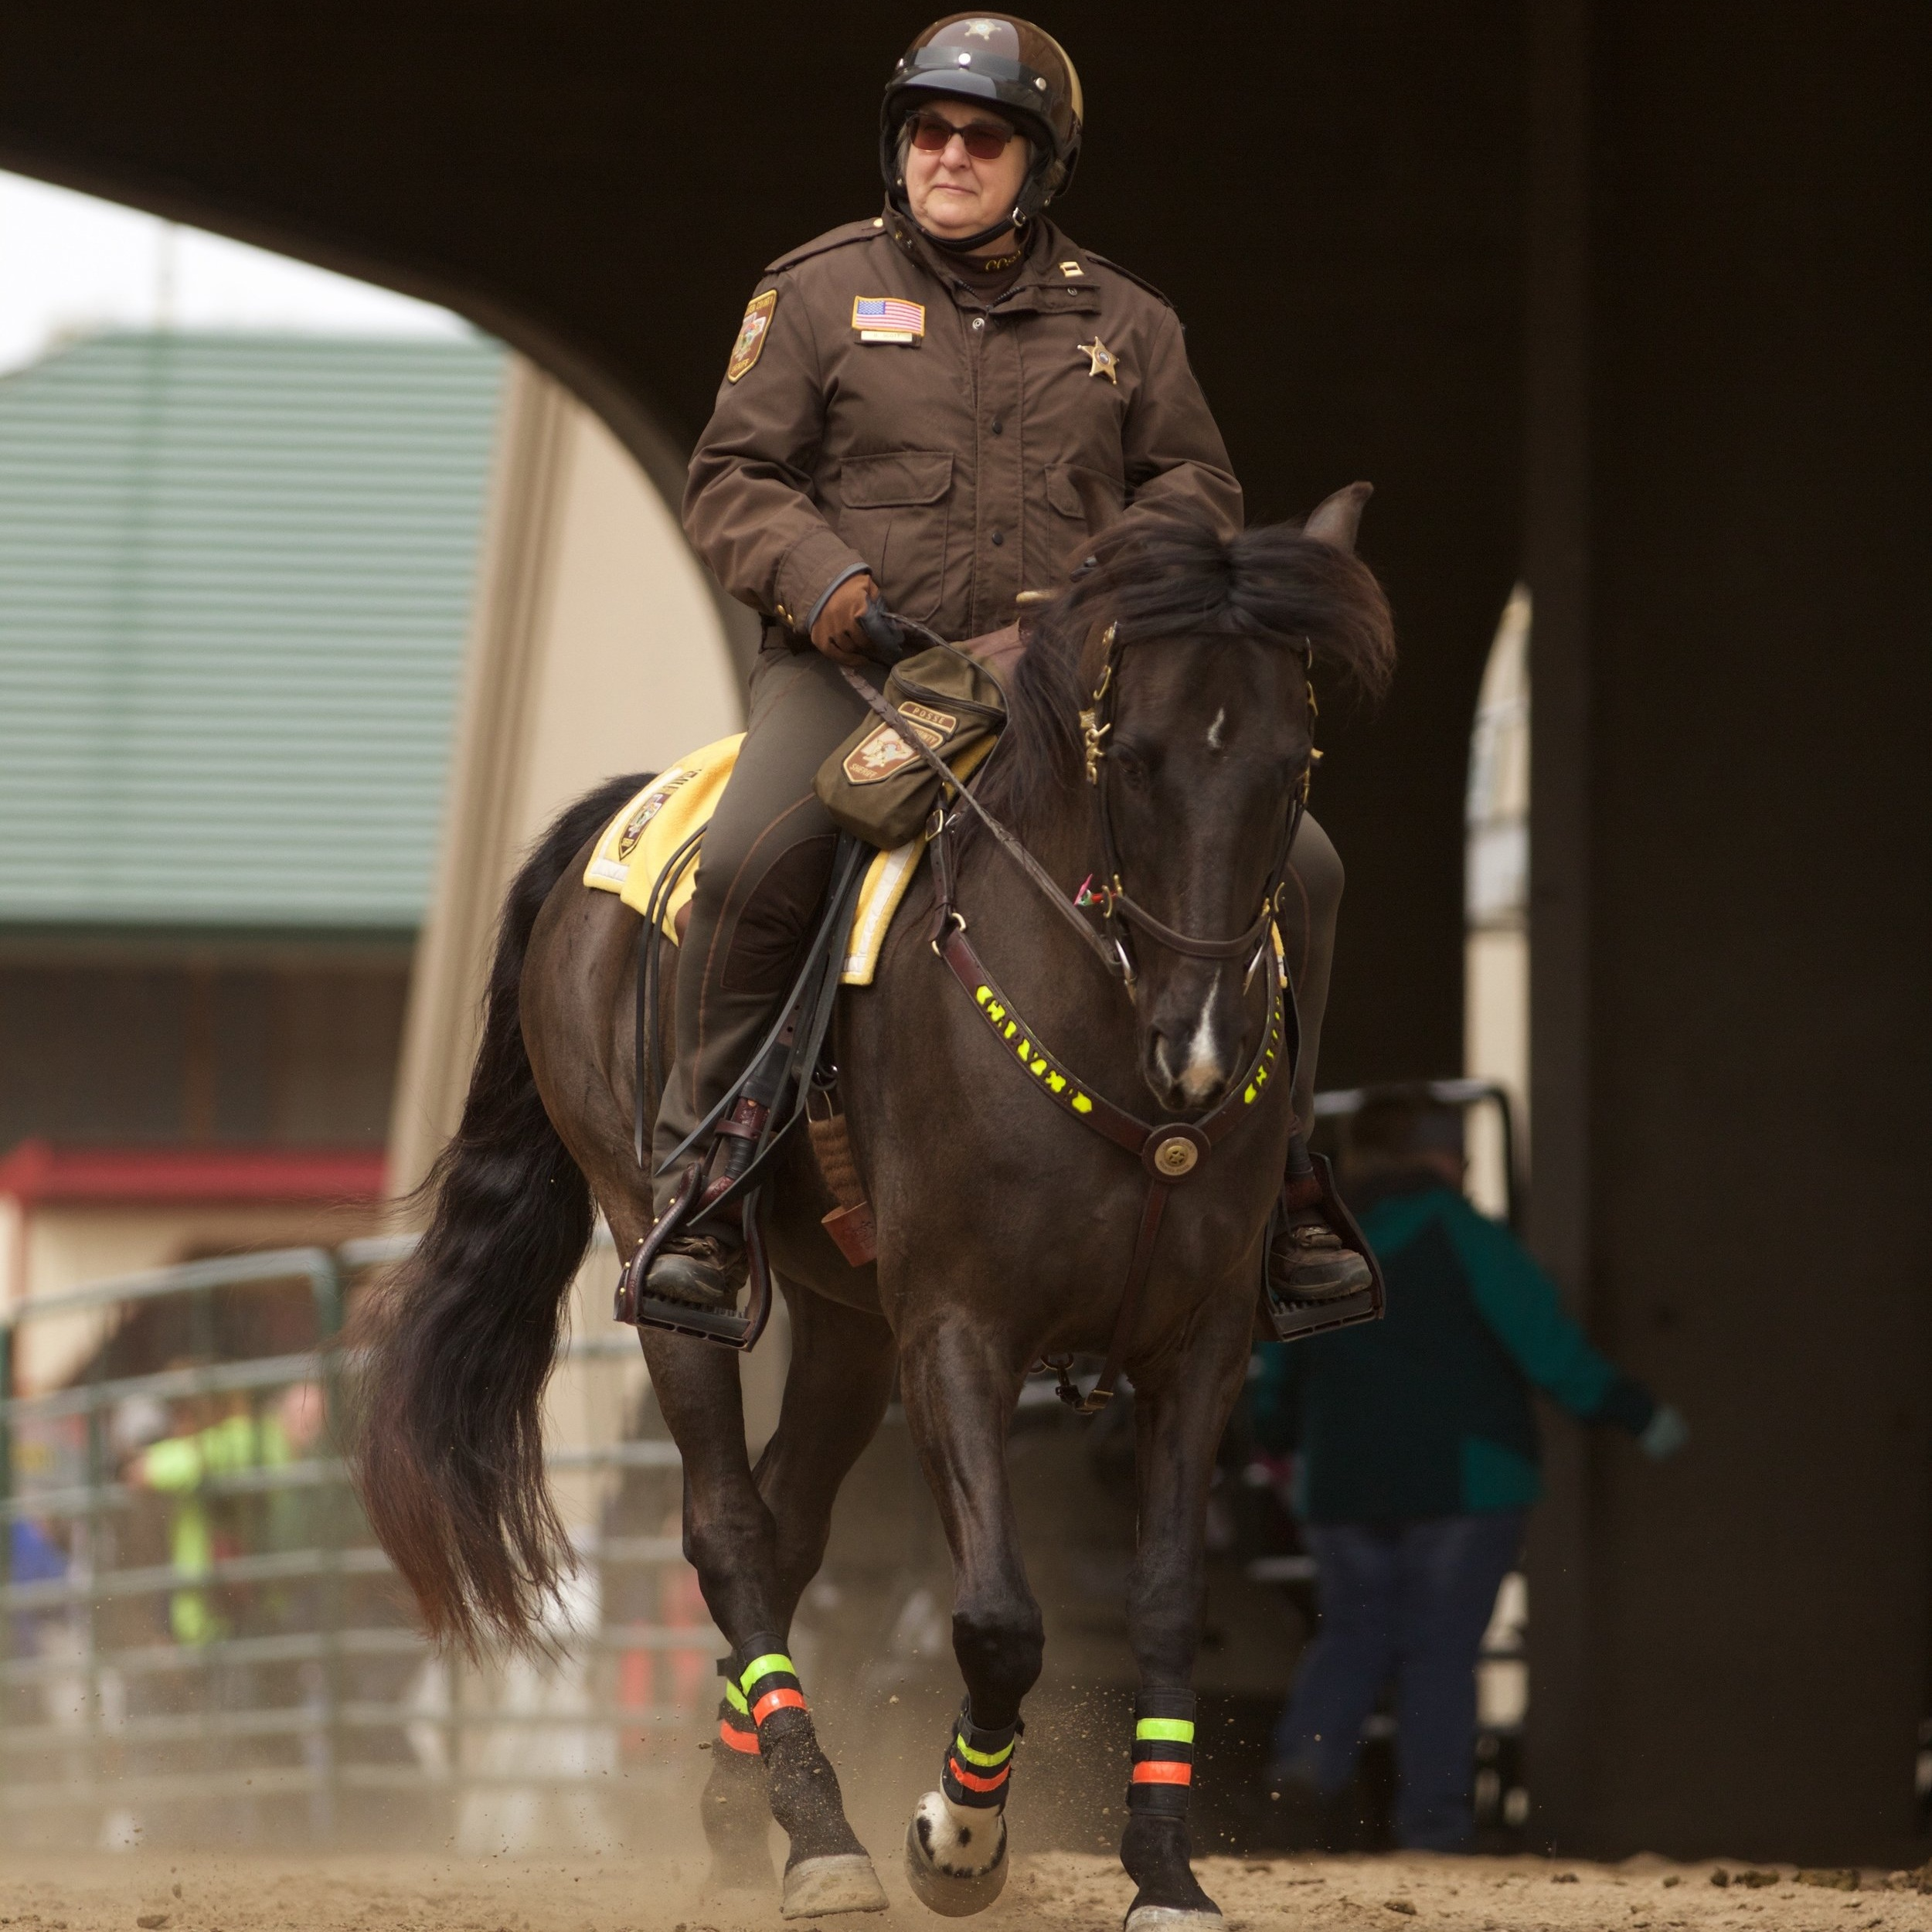 We are ambassadors - The Tennessee Walking Horse is worth getting excited about! We love sharing the amazing abilities and personalities of these horses with the world.